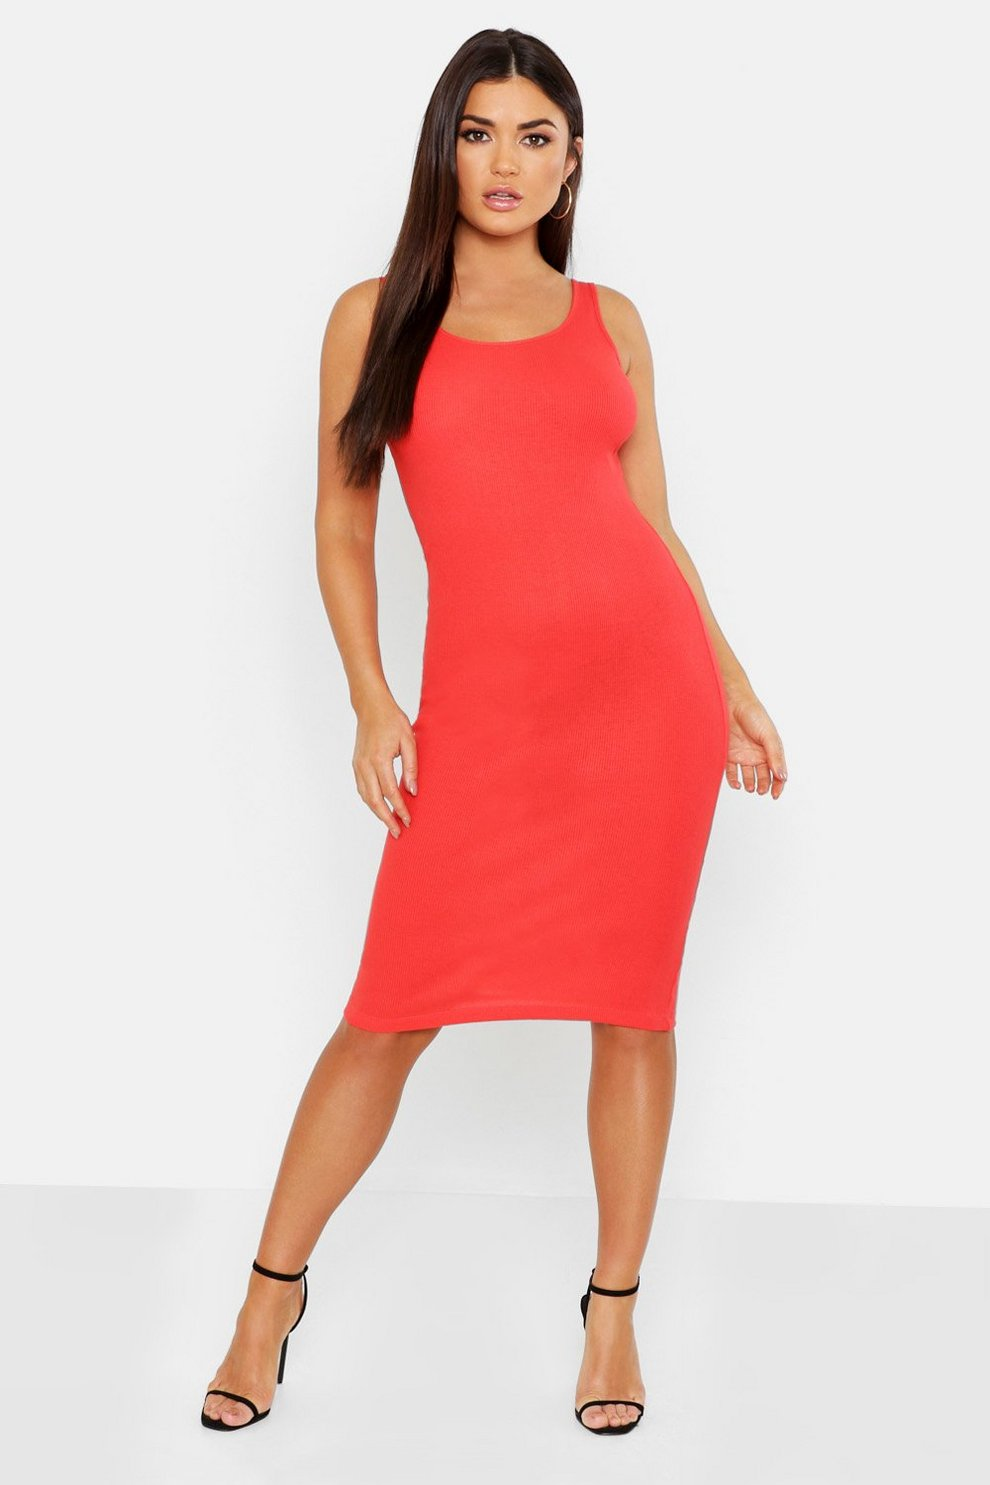 06033c6764 Rib Scoop Neck Midi Dress. Womens Red Rib Scoop Neck Midi Dress. Hover to  zoom